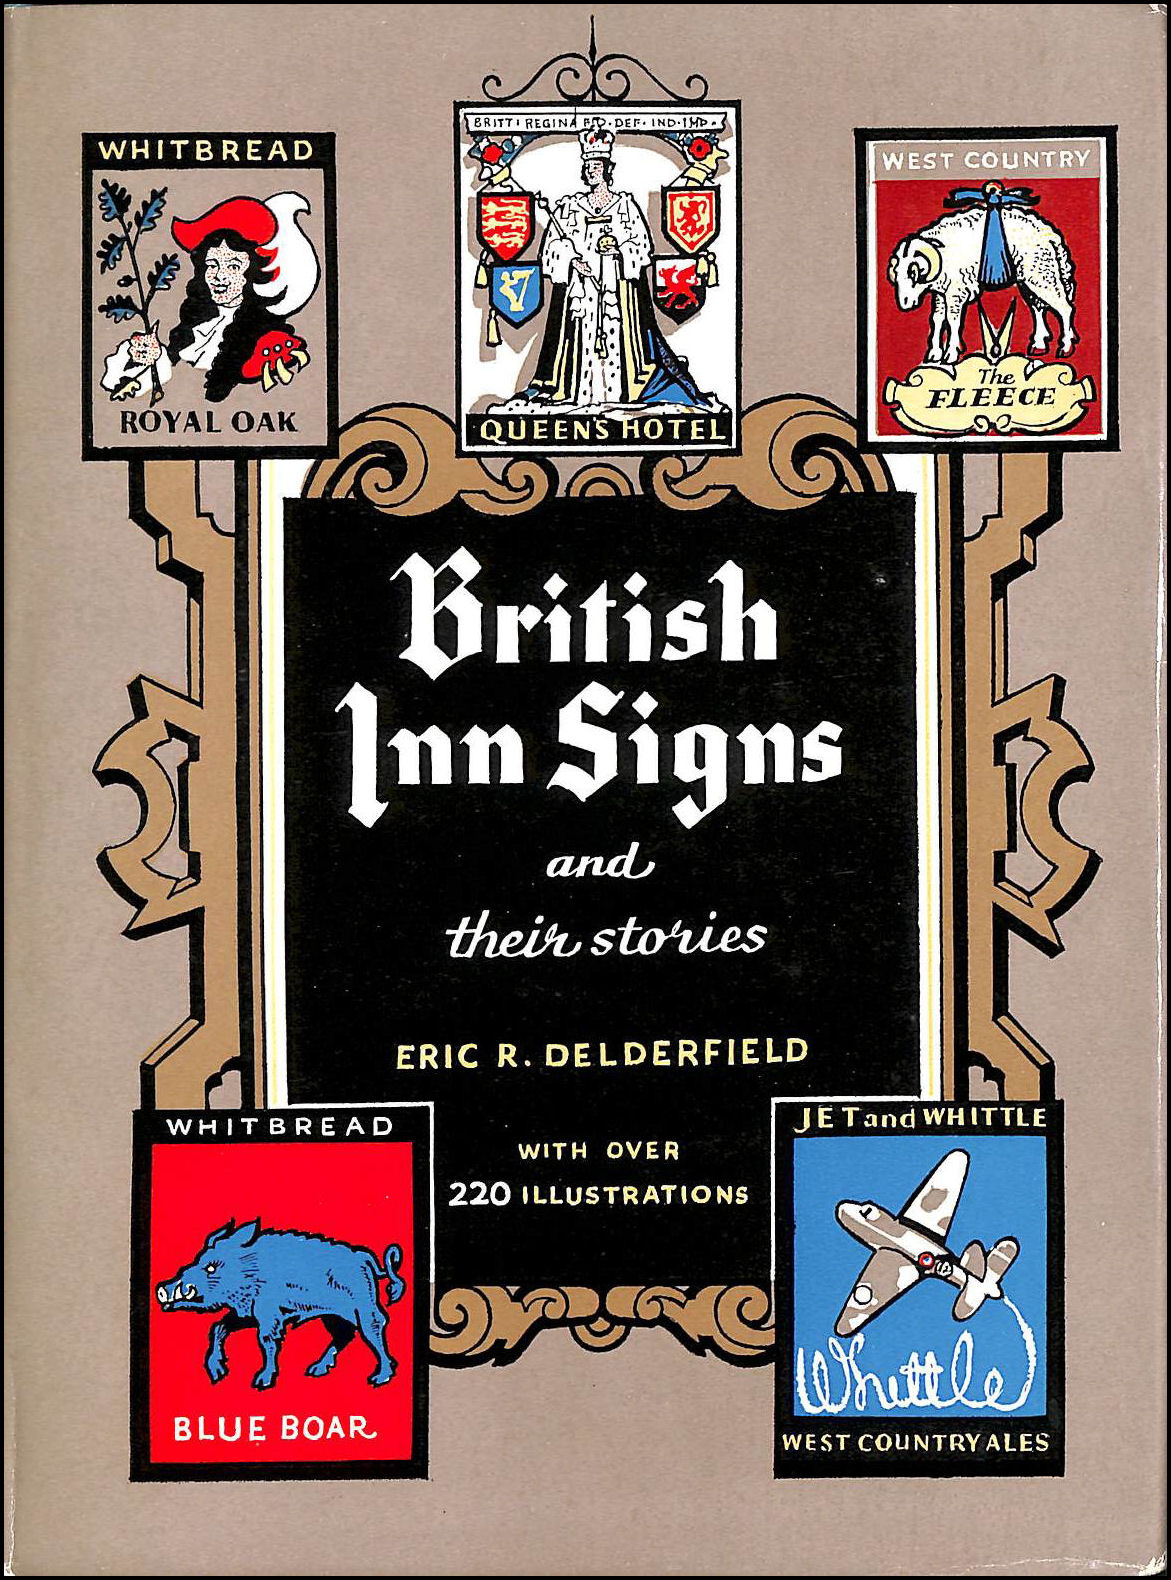 British inn signs and their stories, Delderfield, Eric R